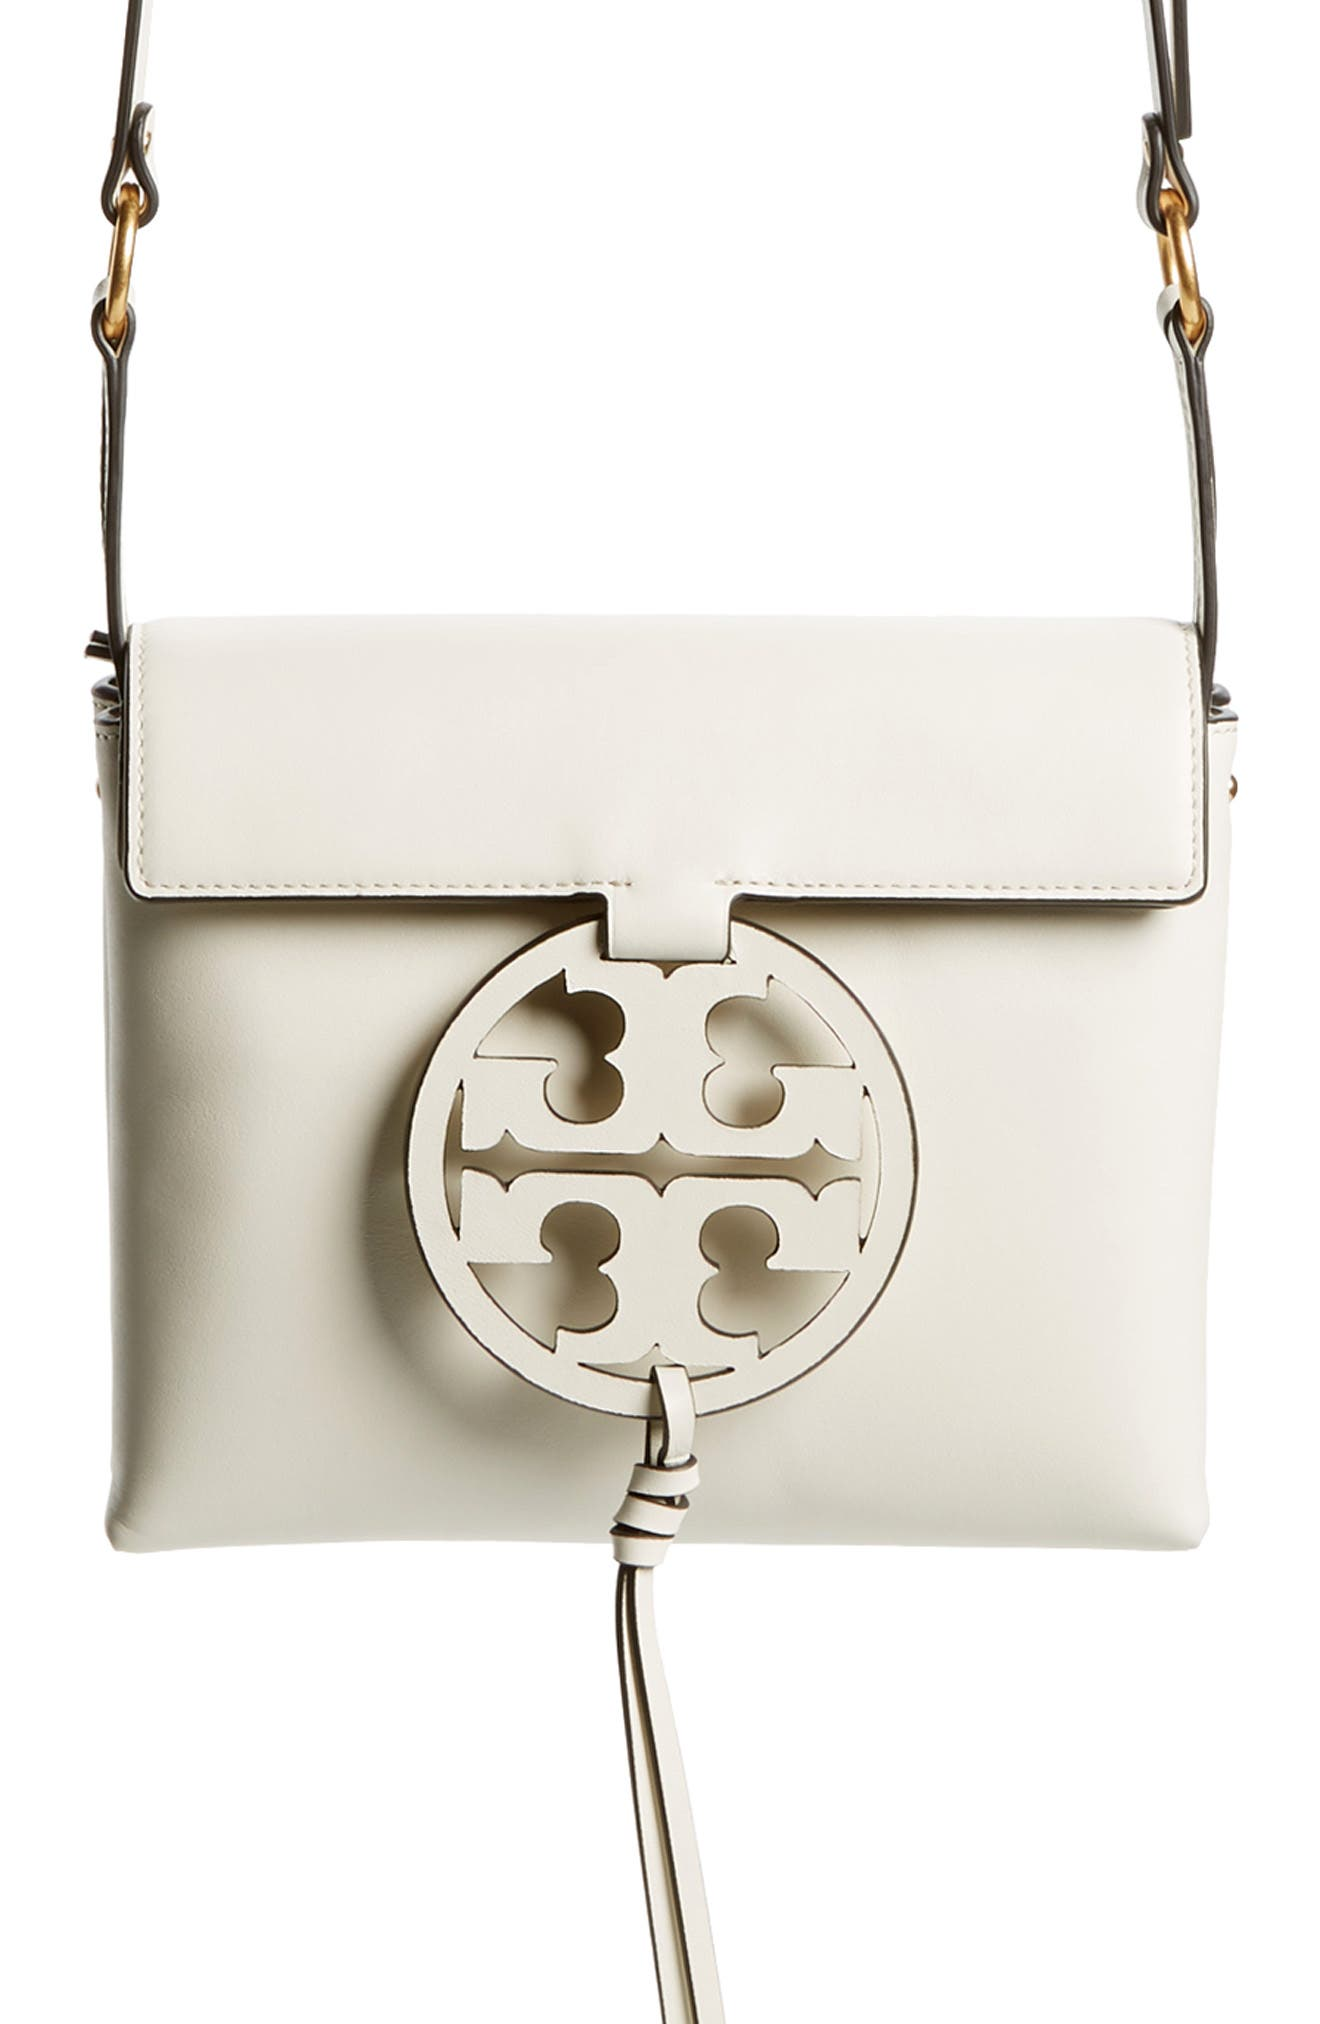 TORY BURCH,                             Miller Leather Crossbody Bag,                             Alternate thumbnail 7, color,                             107